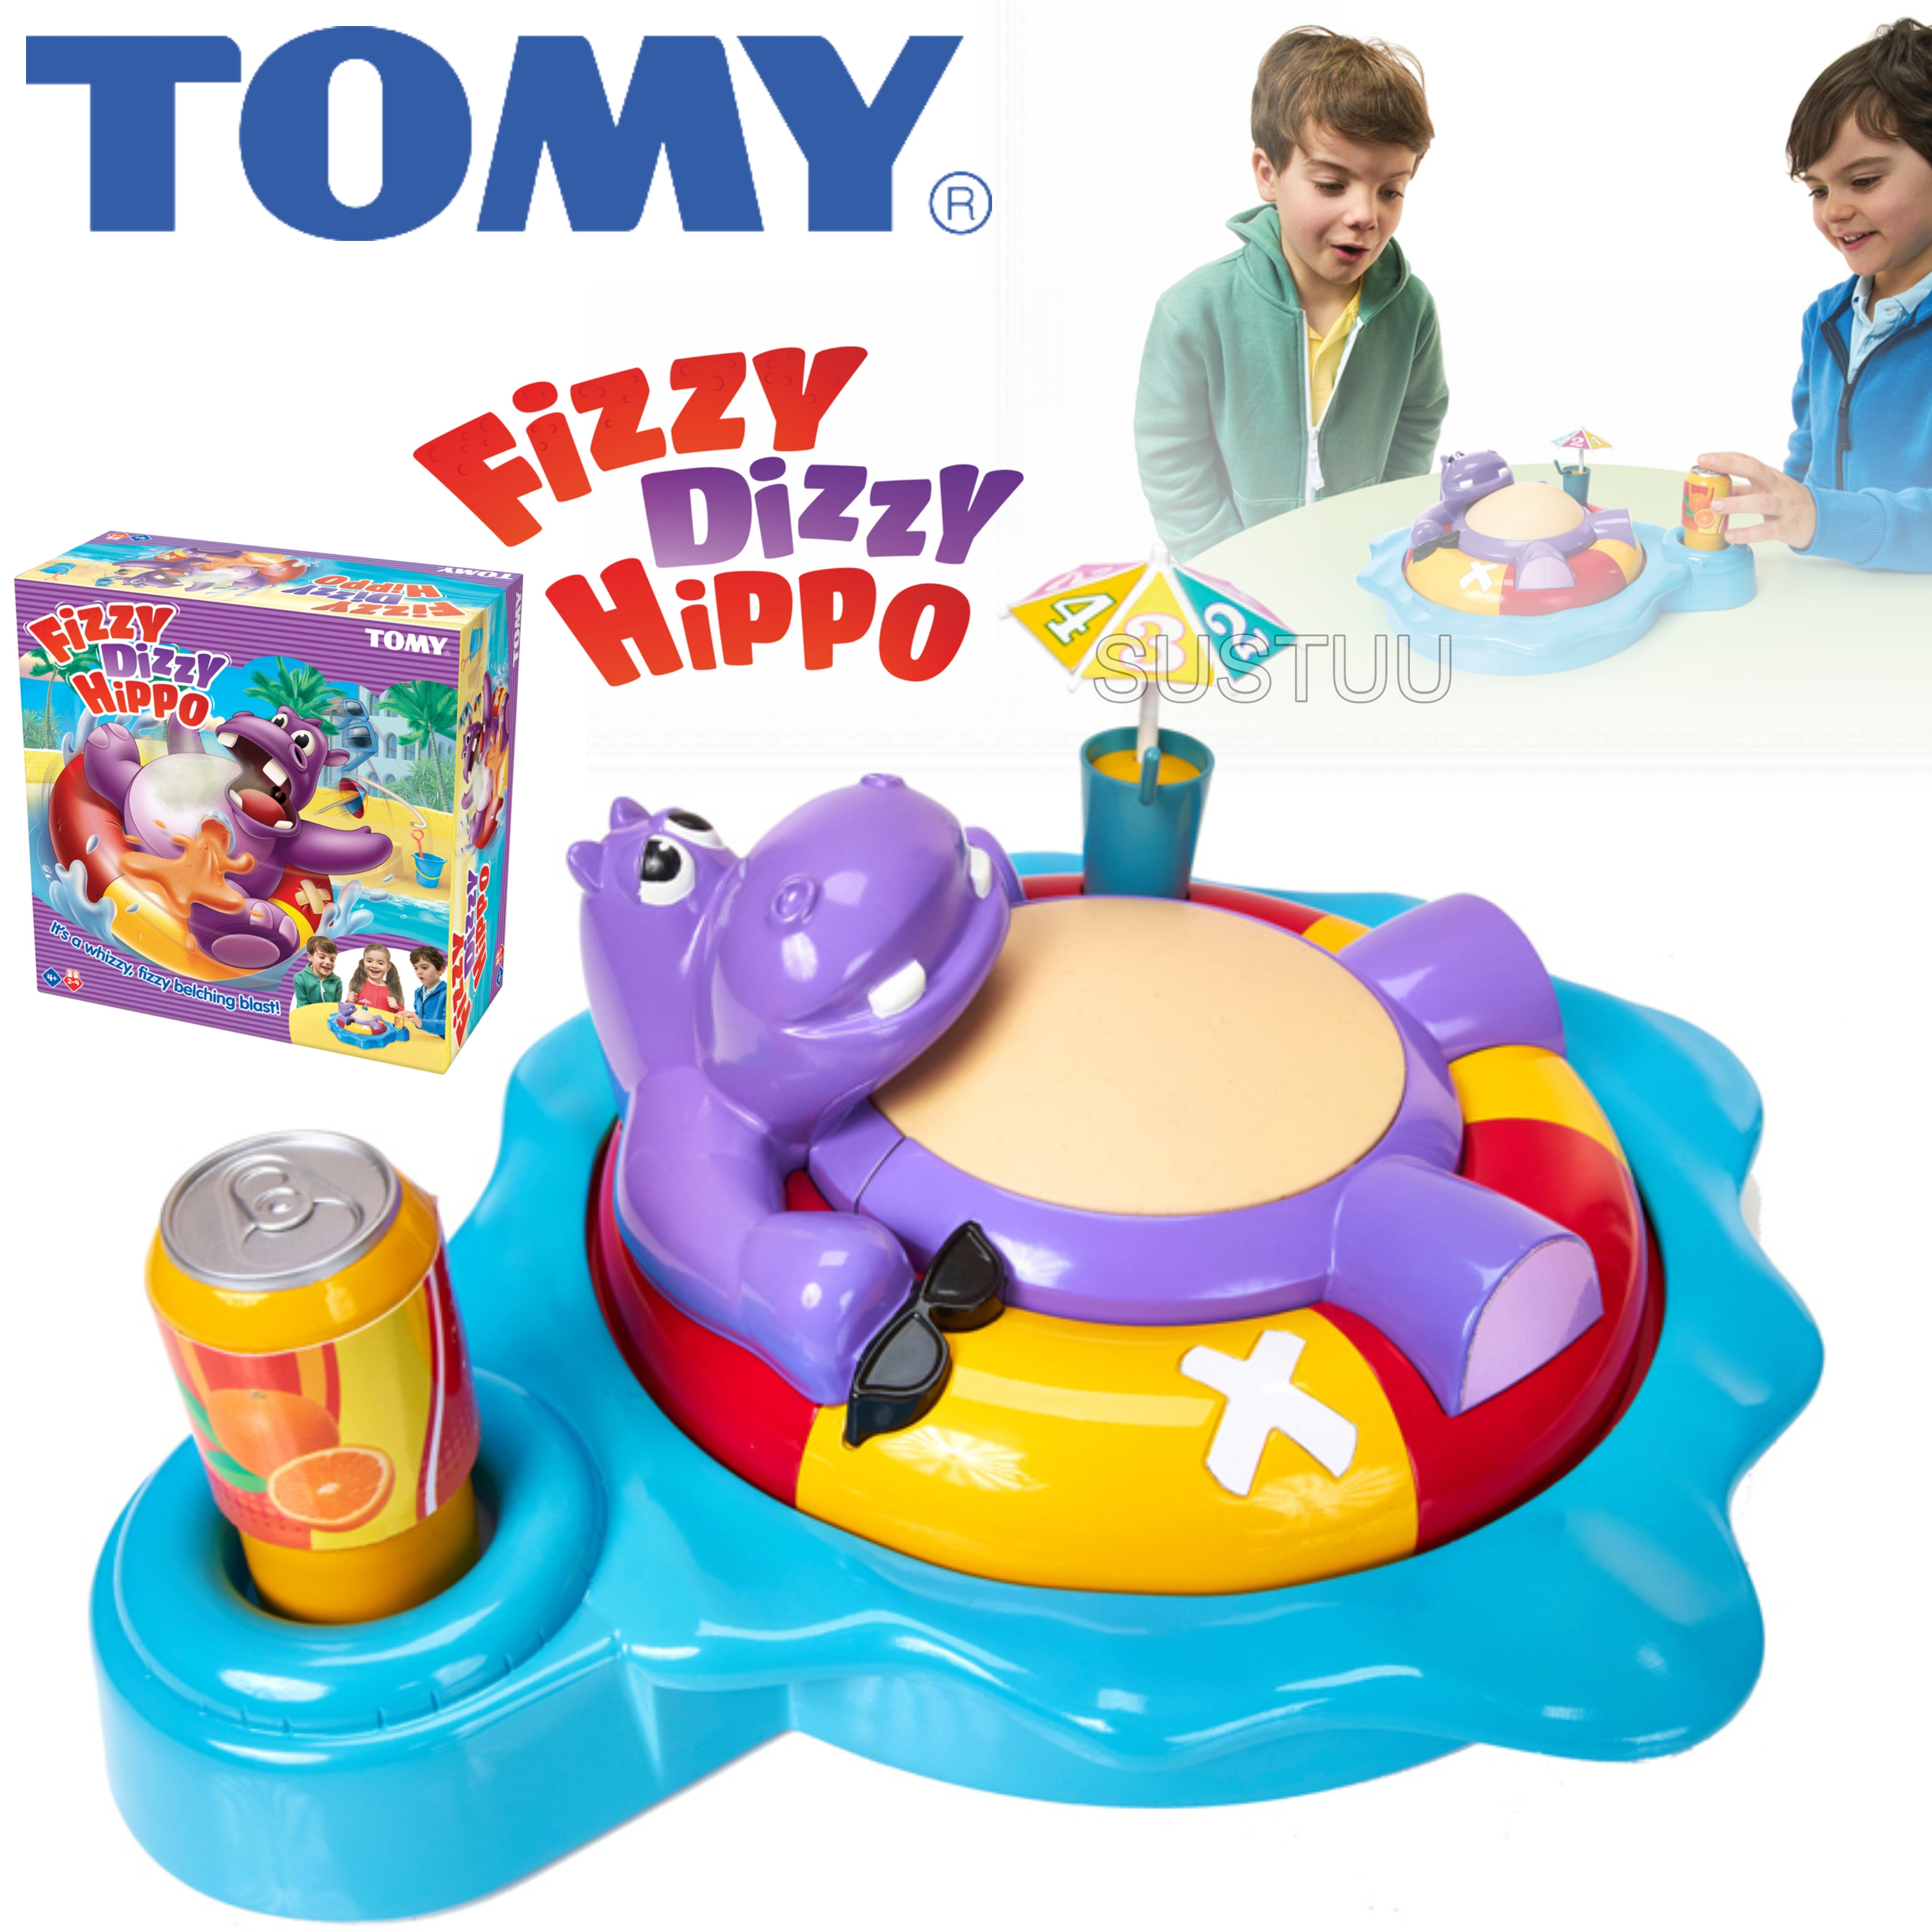 Tomy Fizzy Dizzy Hippo | Childrens Preschool Fun+Action Game With Sound | 2-4 Player